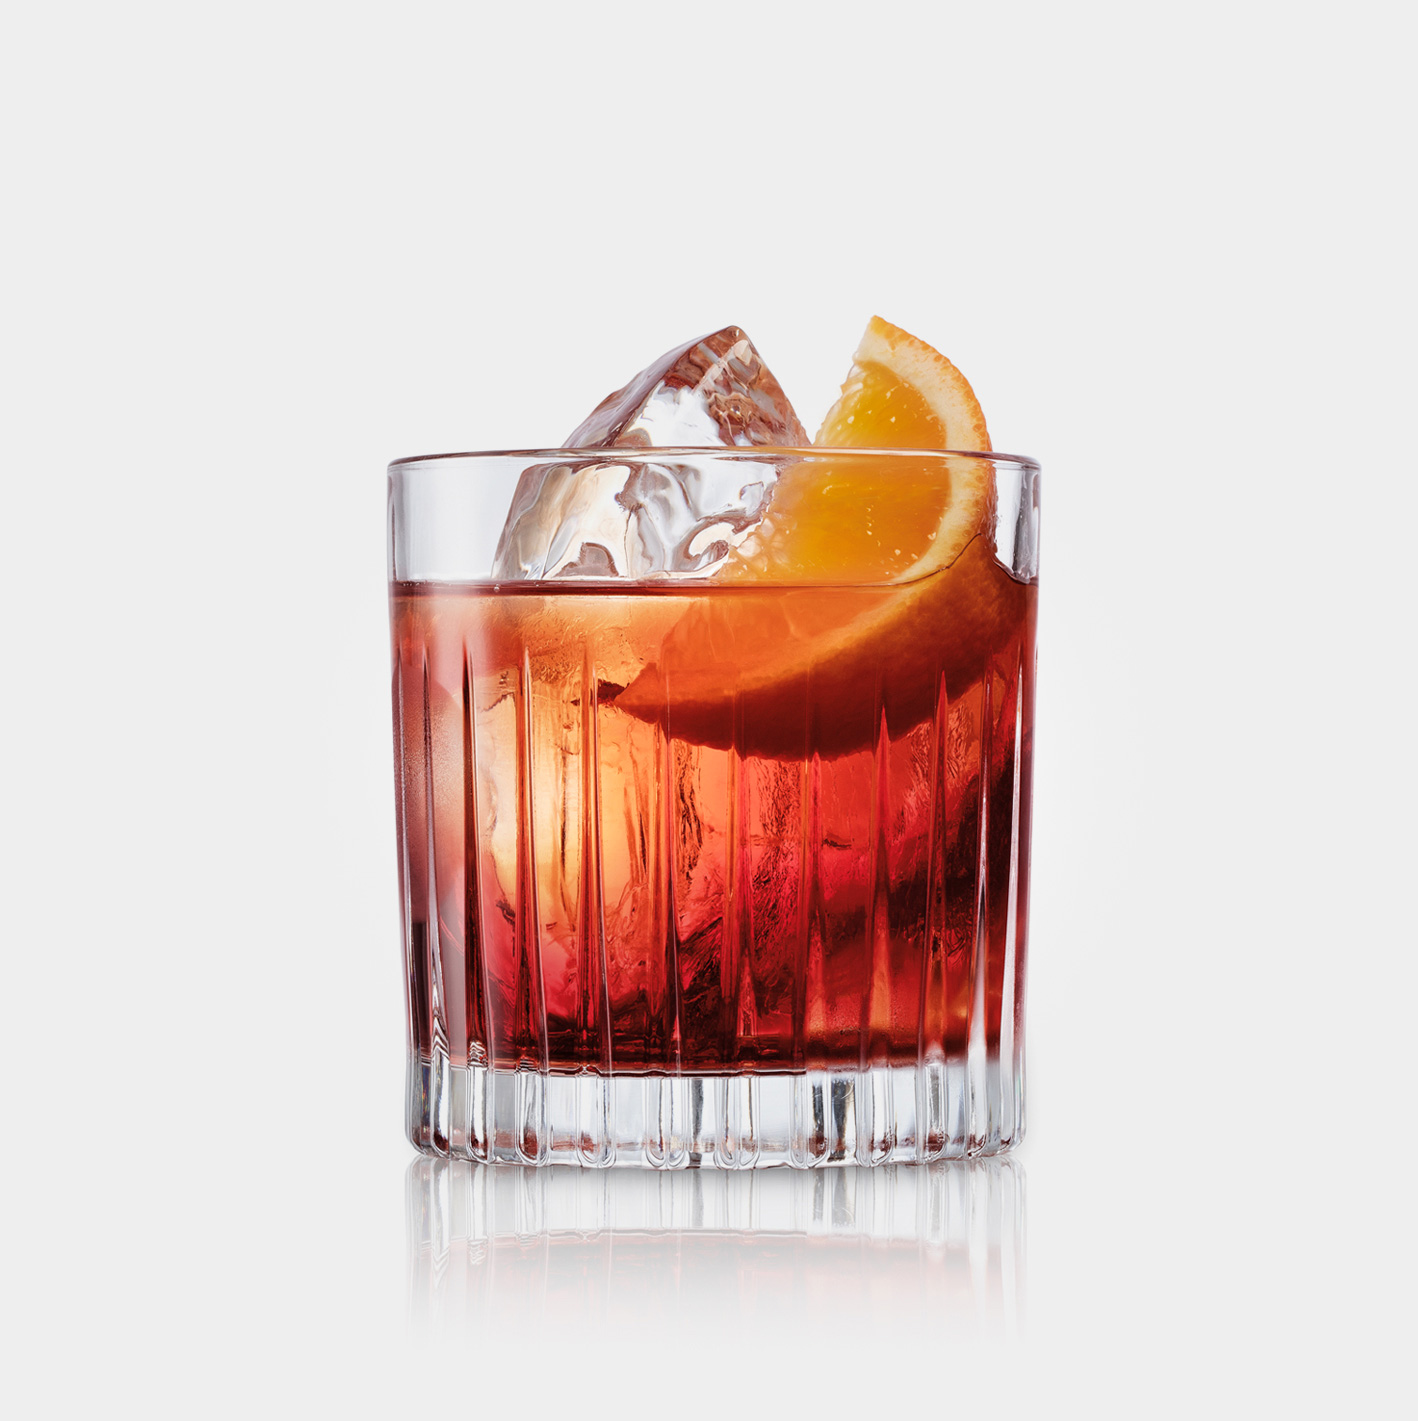 Negroni Campari Theres no Negroni without Campari